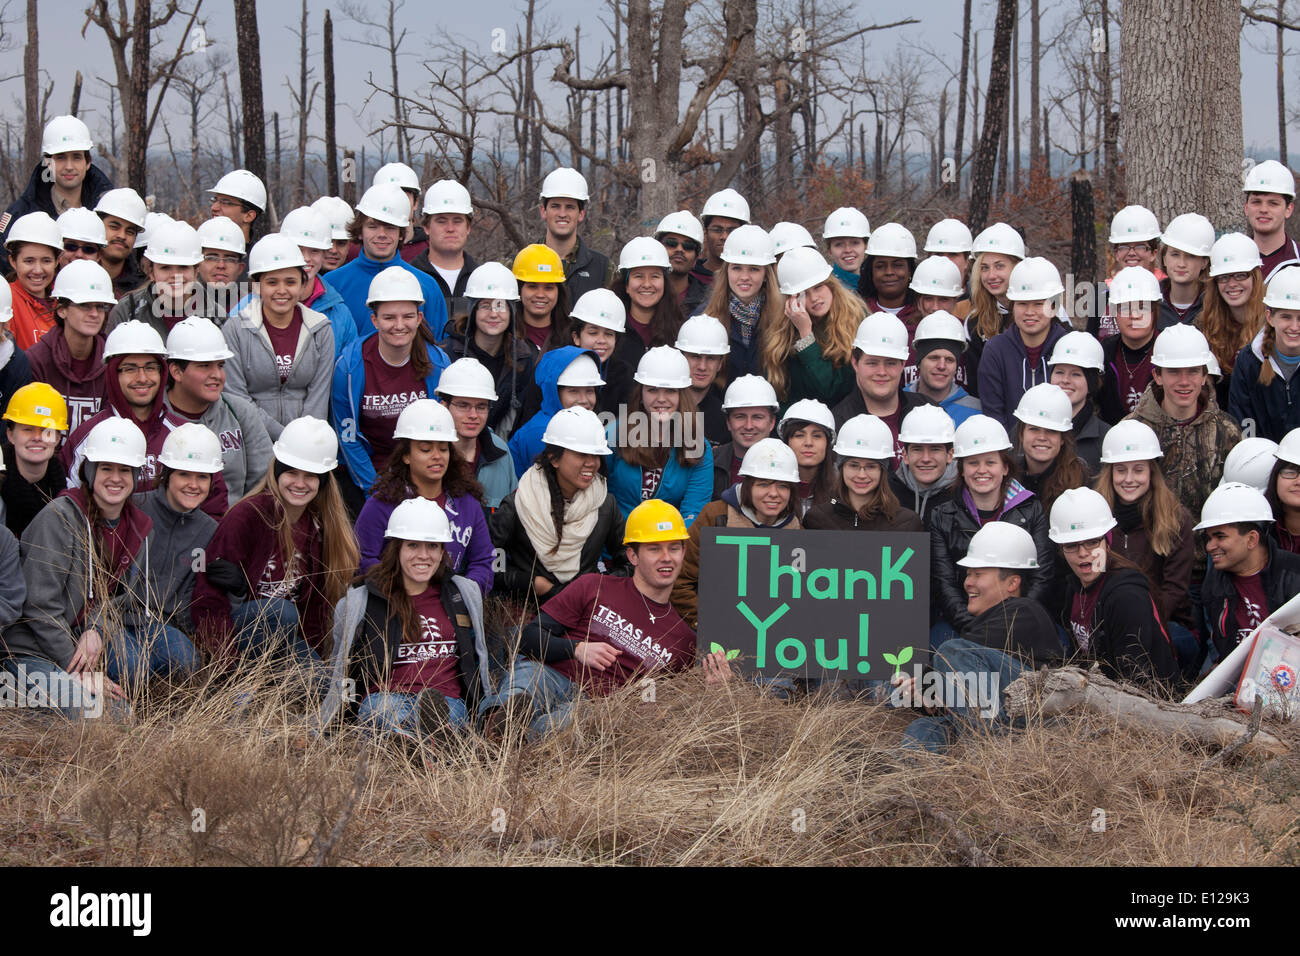 Group picture of college students who volunteered to plant loblolly pine seedlings in forest ravaged by wildfires in 2012 - Stock Image